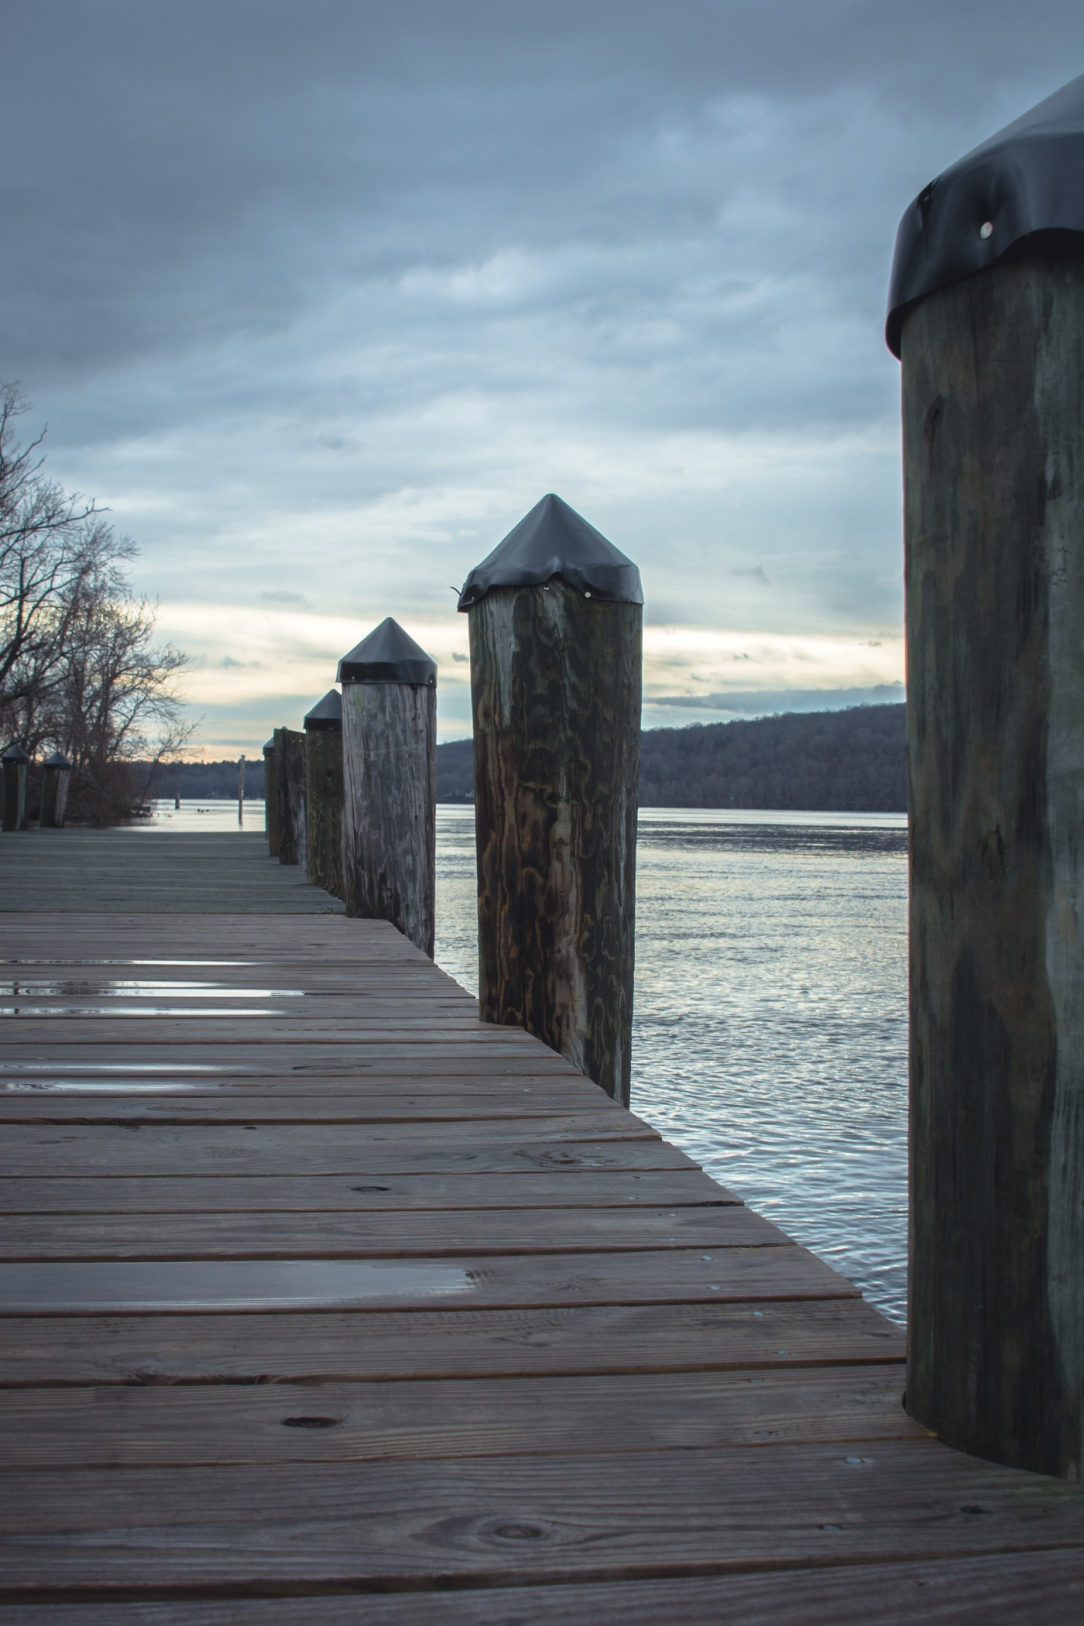 connecticut-river-valley-new-years-day-jamie-bannon-photography_3595-2